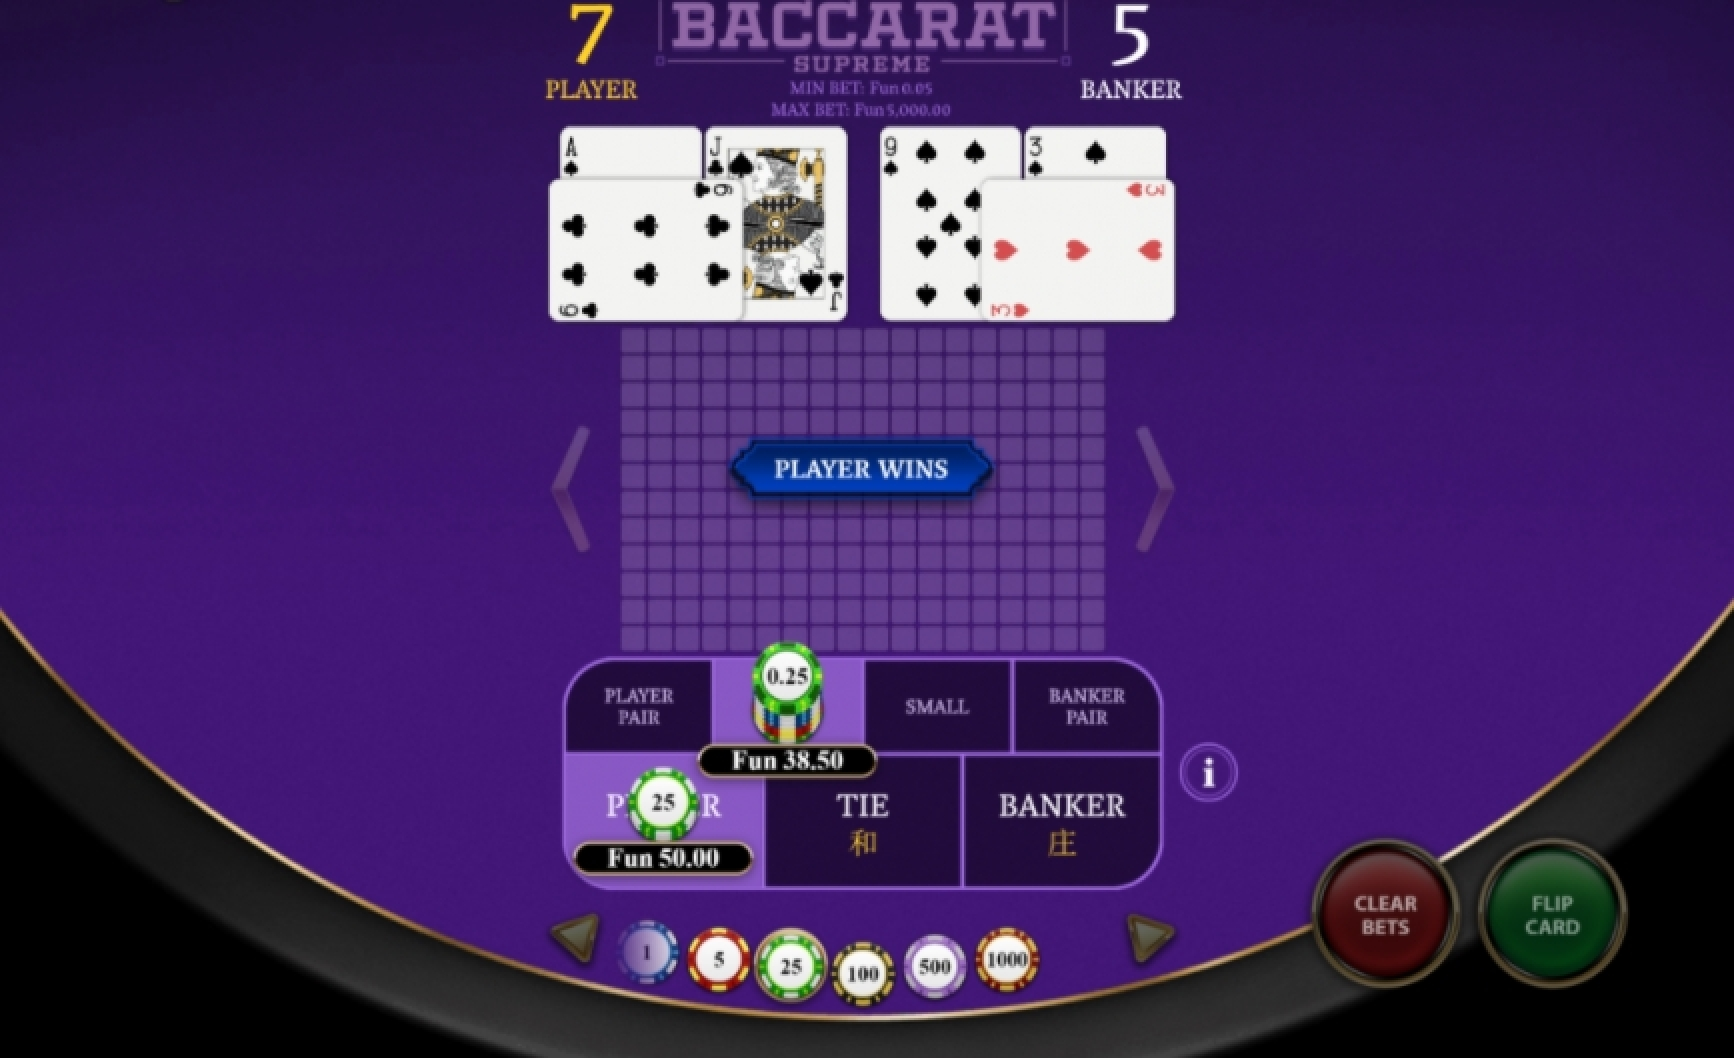 The Baccarat Supreme Online Slot Demo Game by OneTouch Games